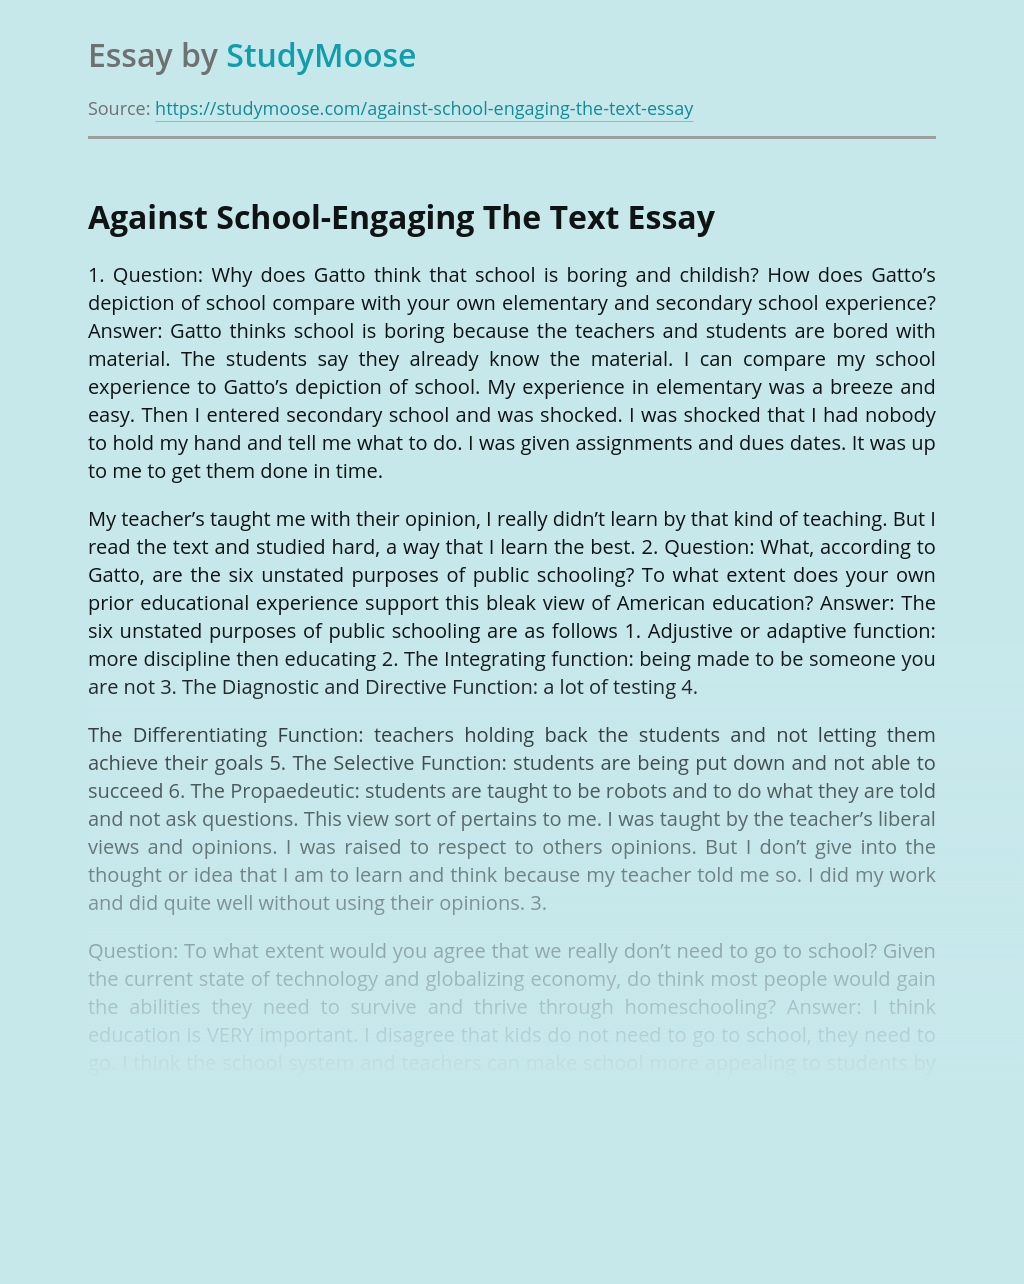 Against School-Engaging The Text